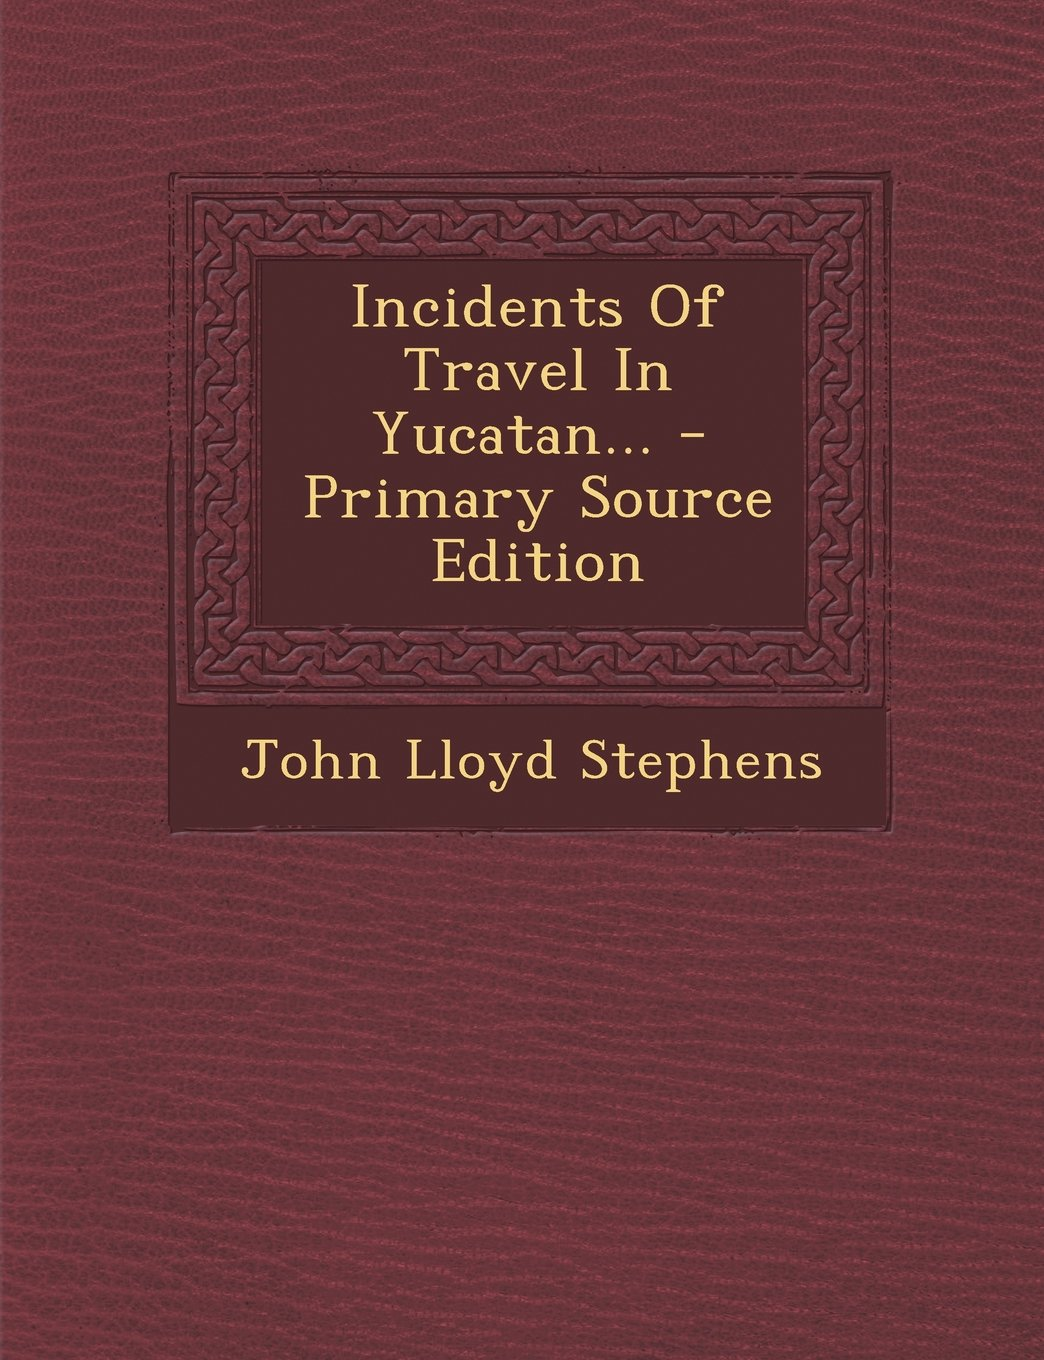 Download Incidents of Travel in Yucatan... - Primary Source Edition ebook